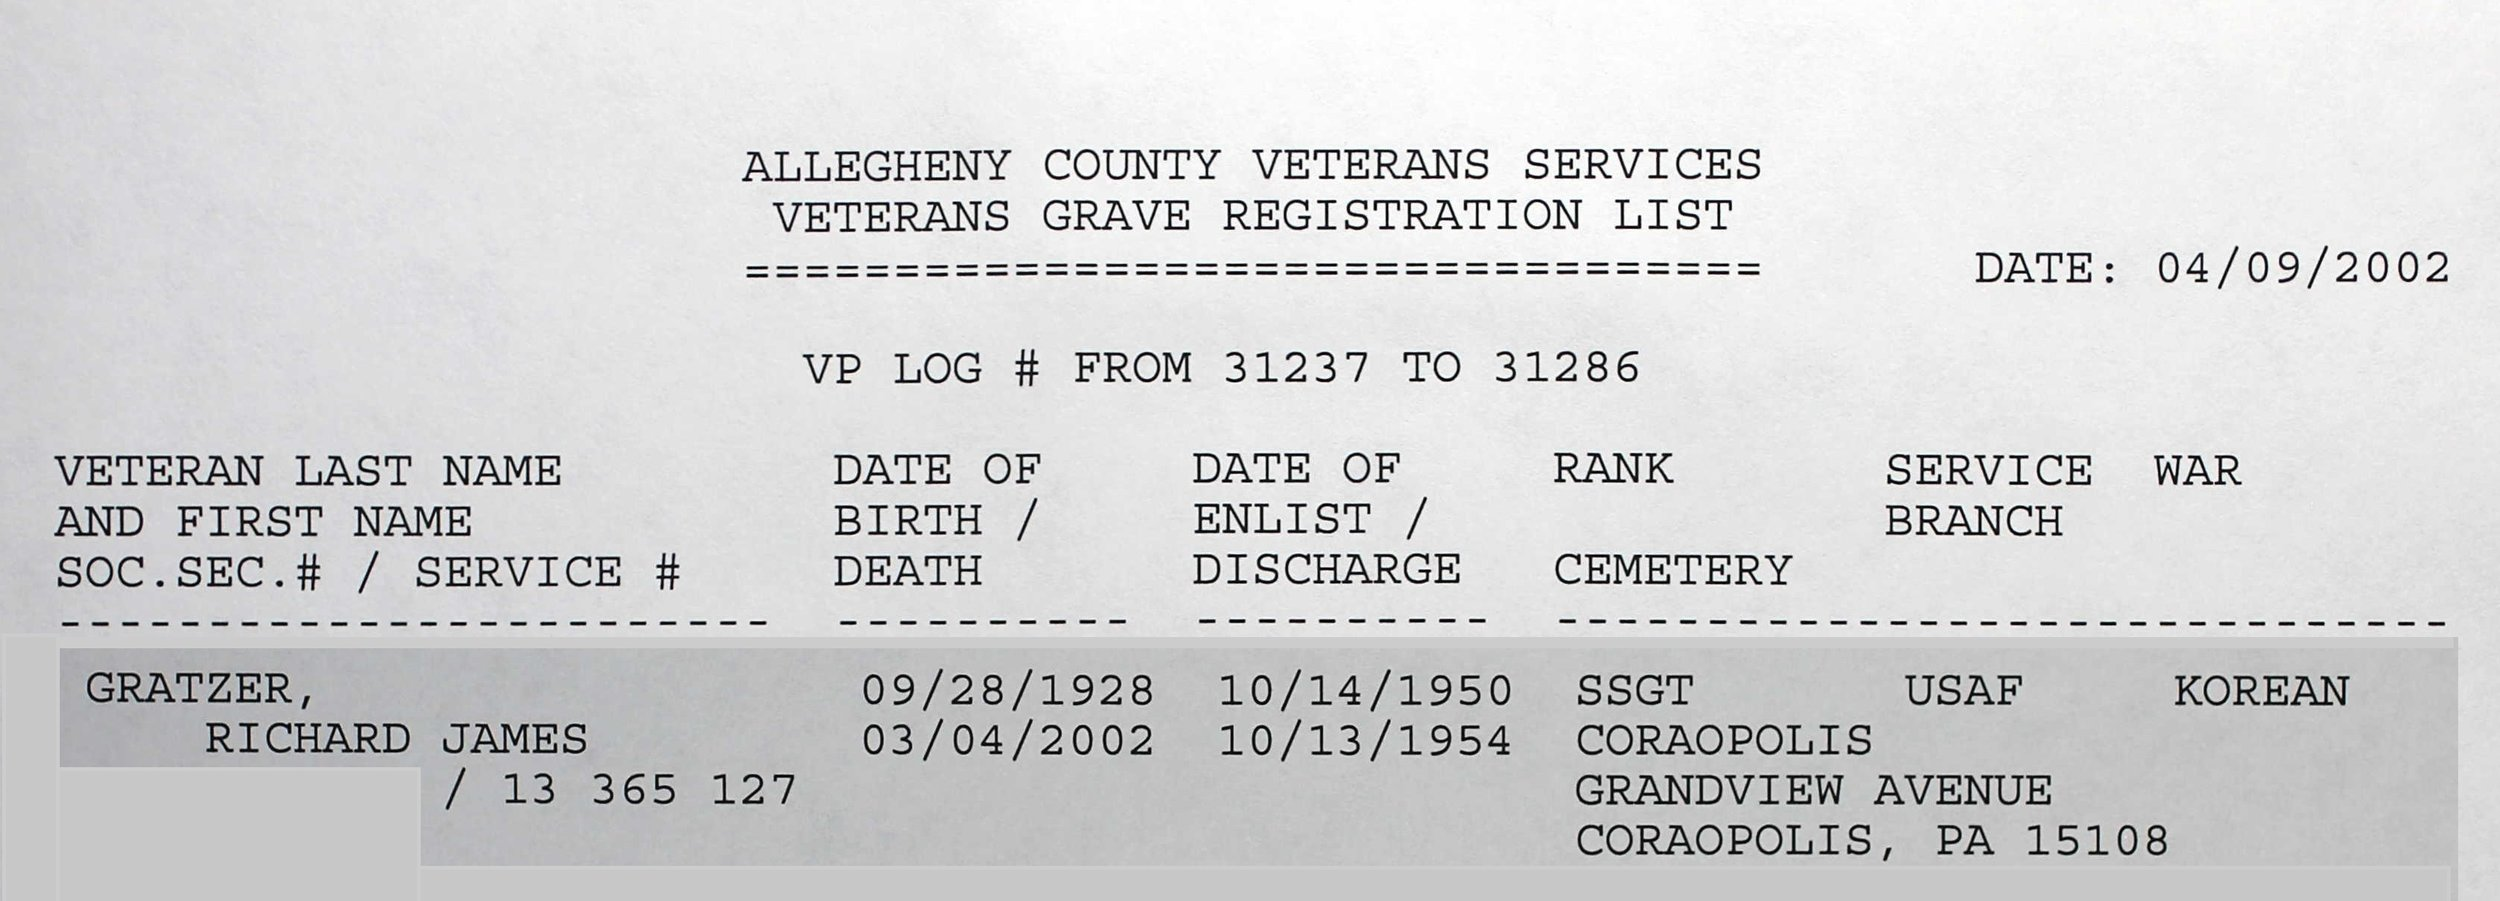 Pennsylvania Veterans Burial Cards, 1777–2012, Digital Images 3–5. PA Historical and Museum Commission, Bureau of Archives and History, Harrisburg PA